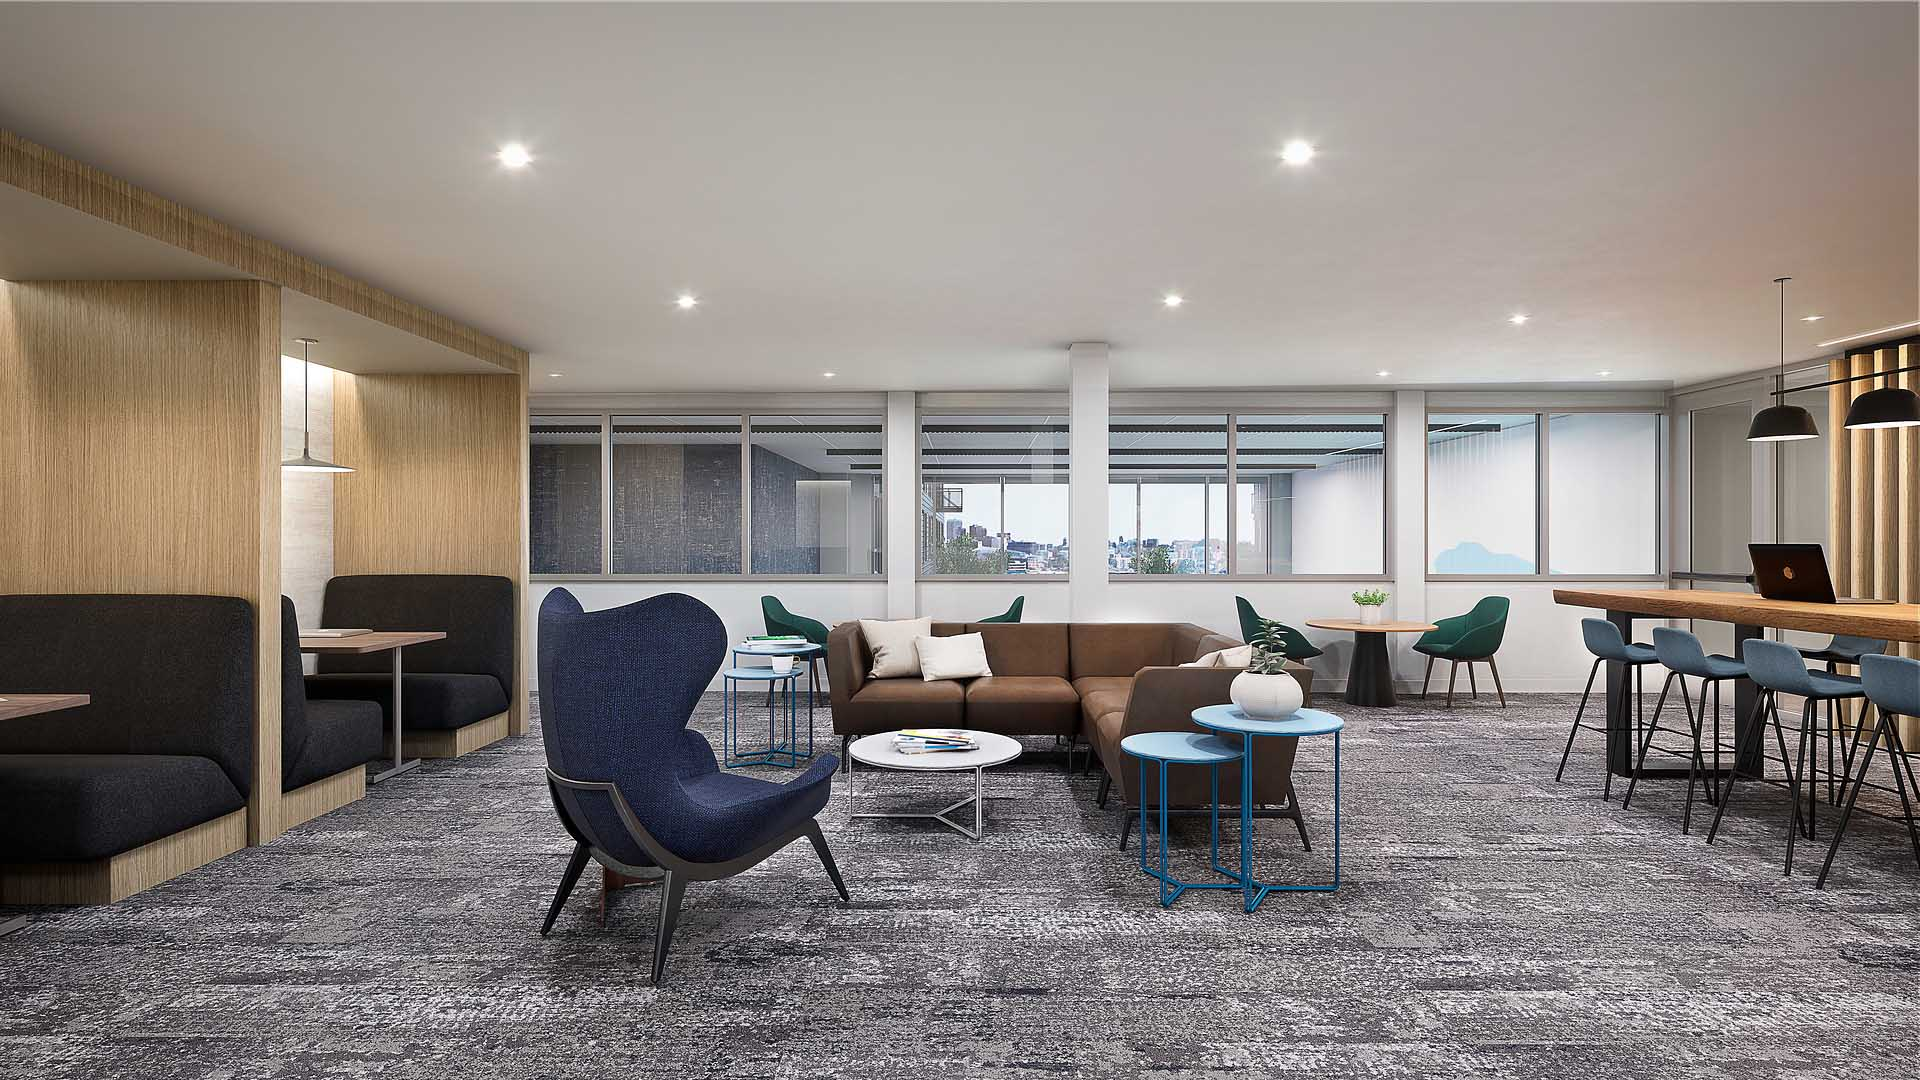 A rendering of an apartment coworking lounge